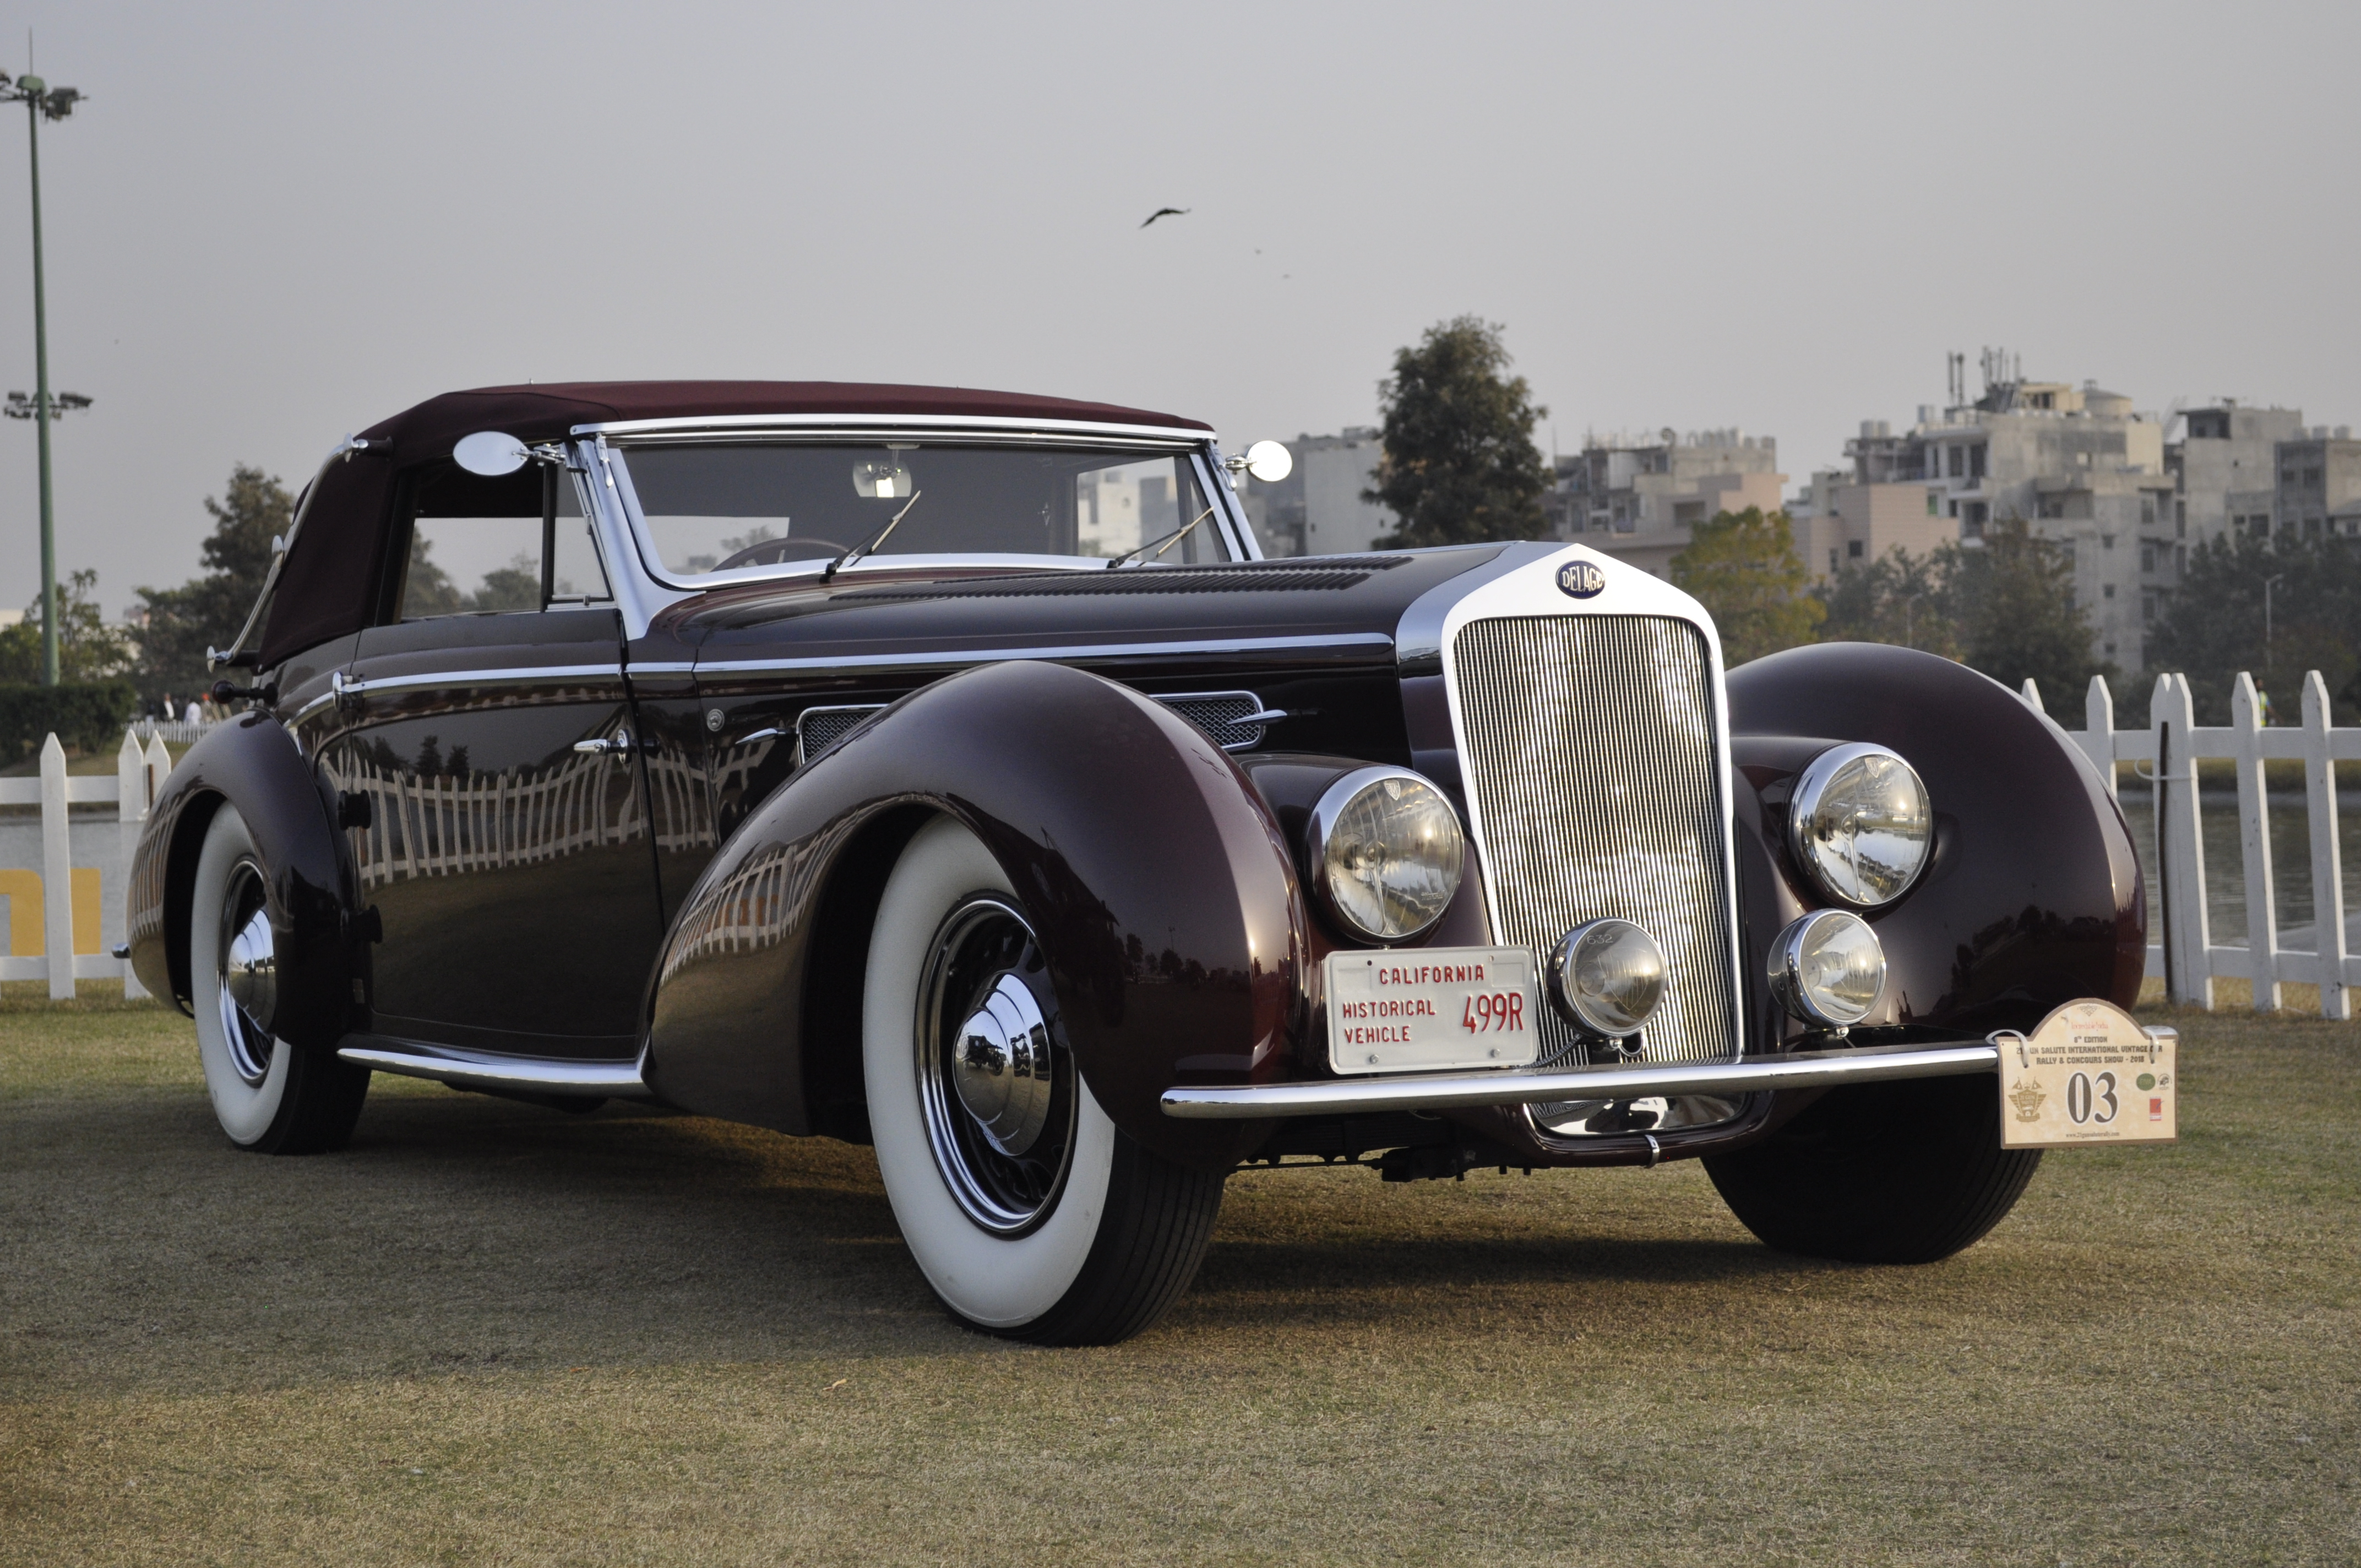 India\'s 21 Gun Salute International Vintage Car Rally & Concours ...